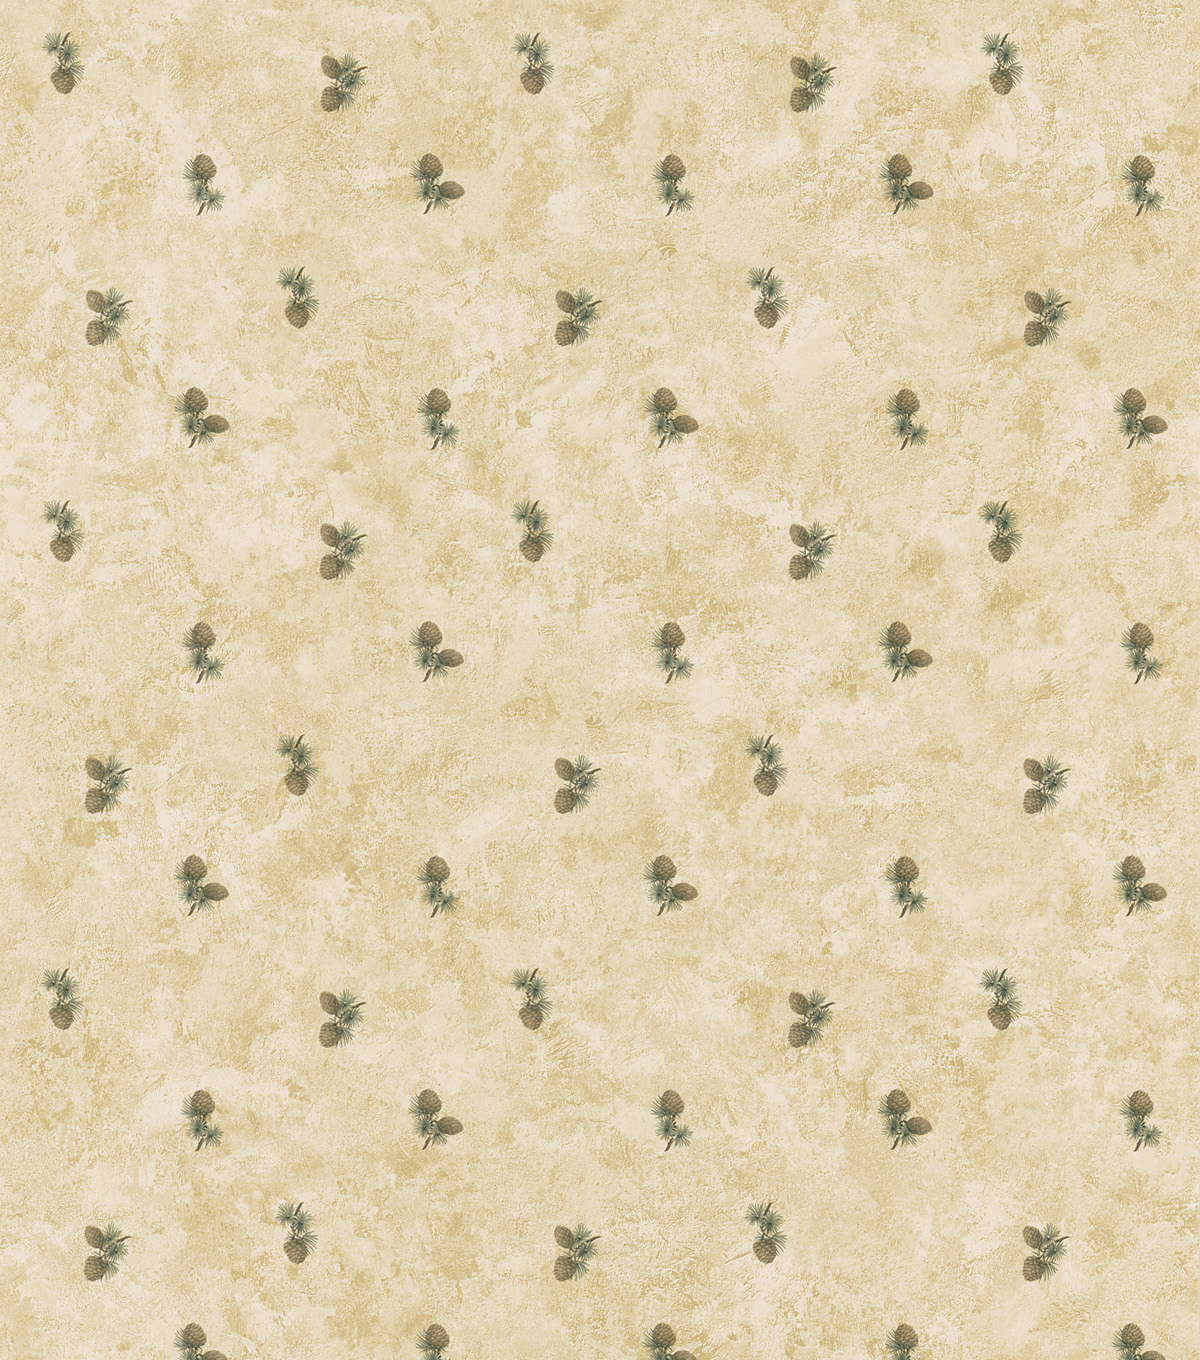 Oxford Beige Pinecones Wallpaper Sample